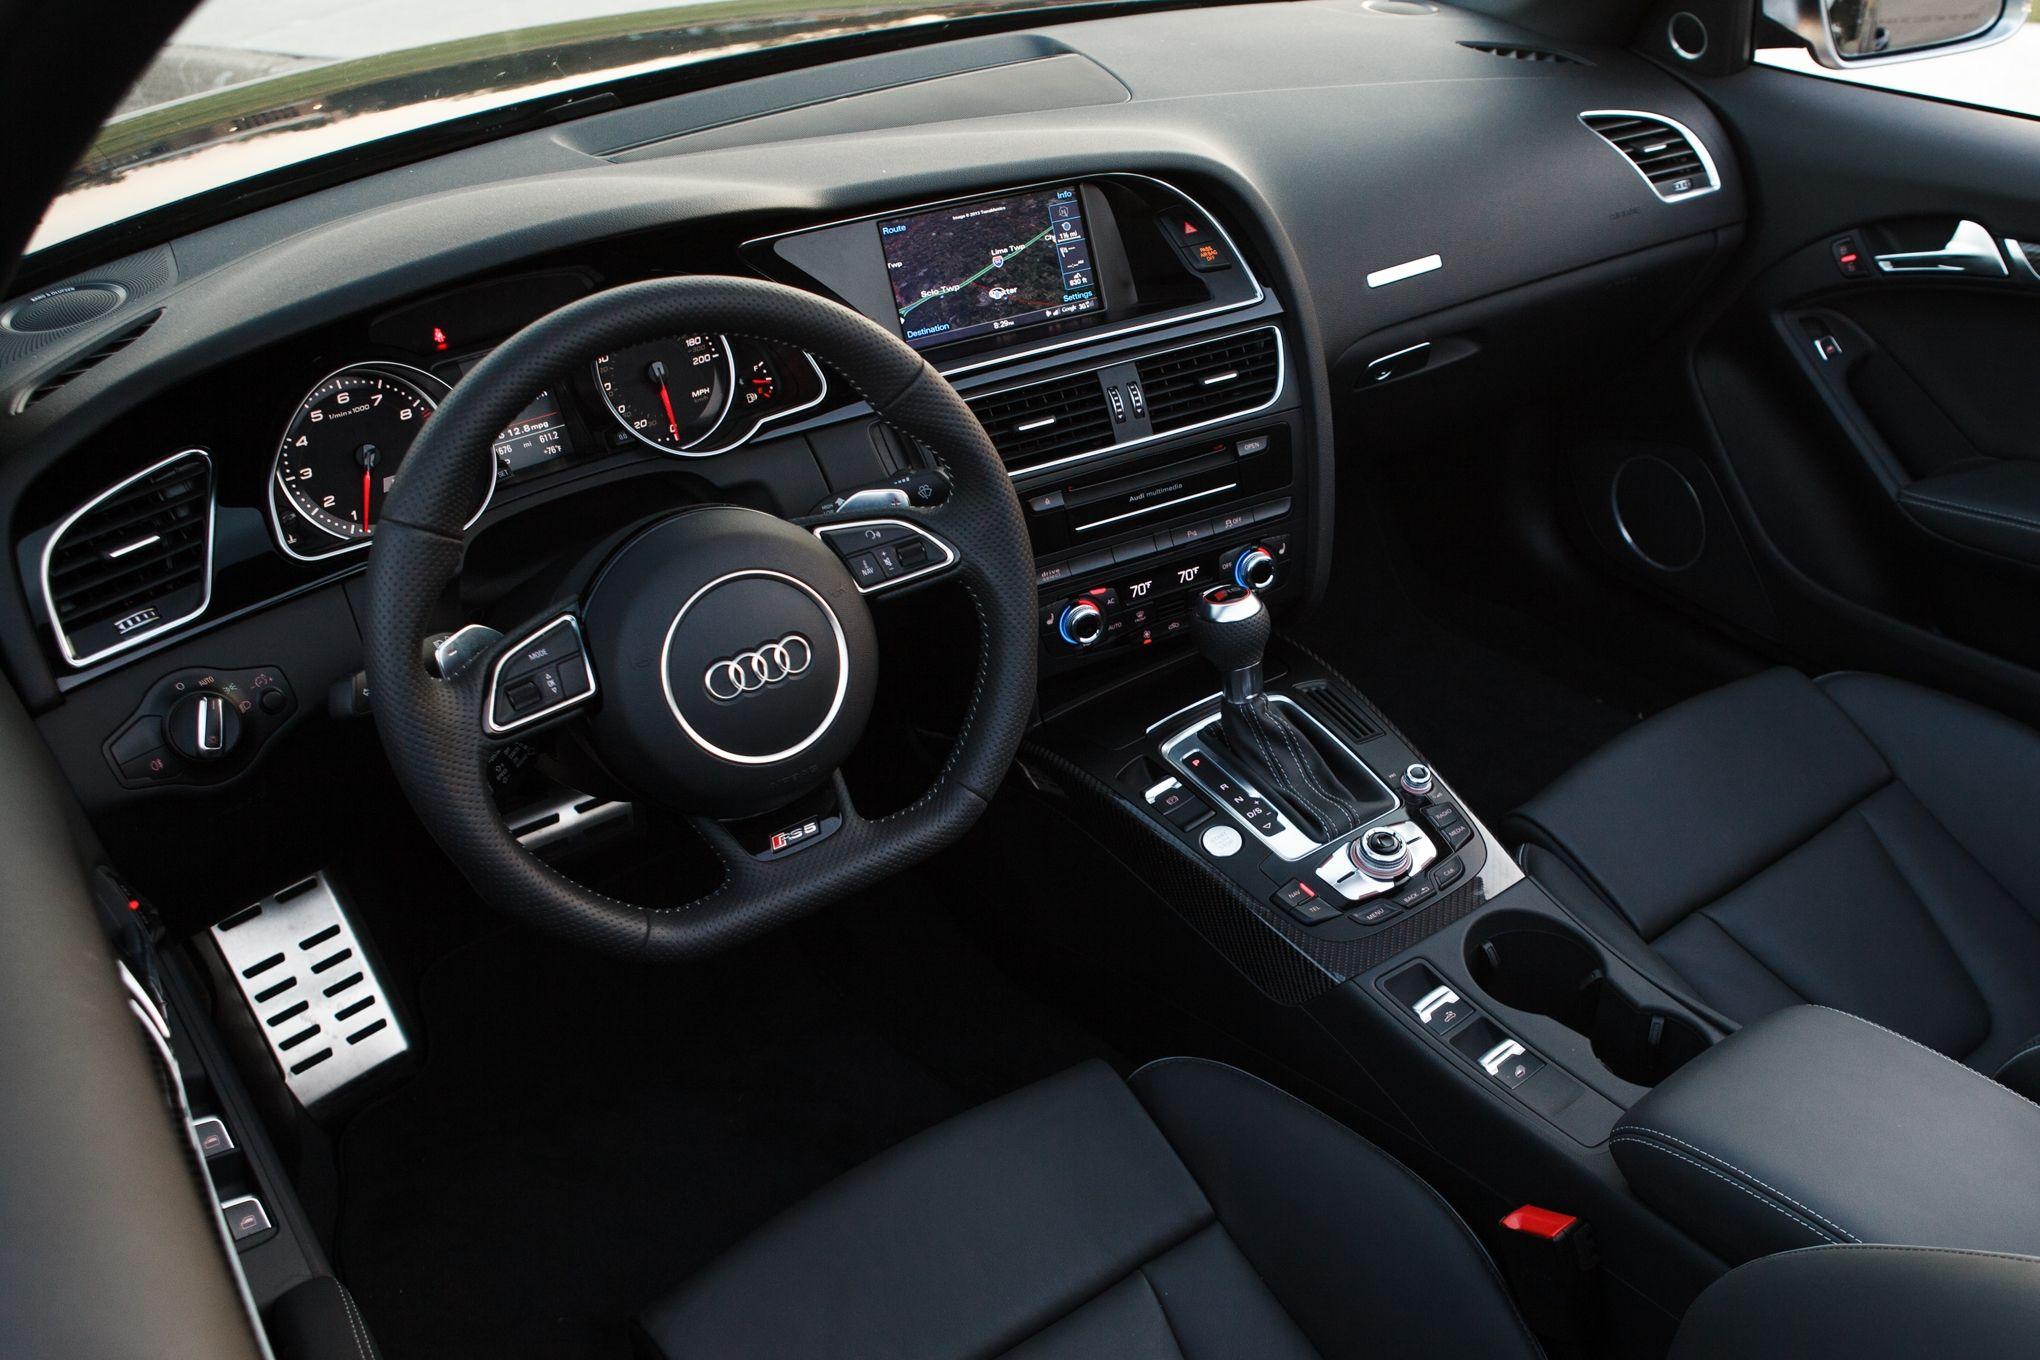 pictures audi rs5 inside | 2013 Audi RS5 Cabriolet front interior 14 ...